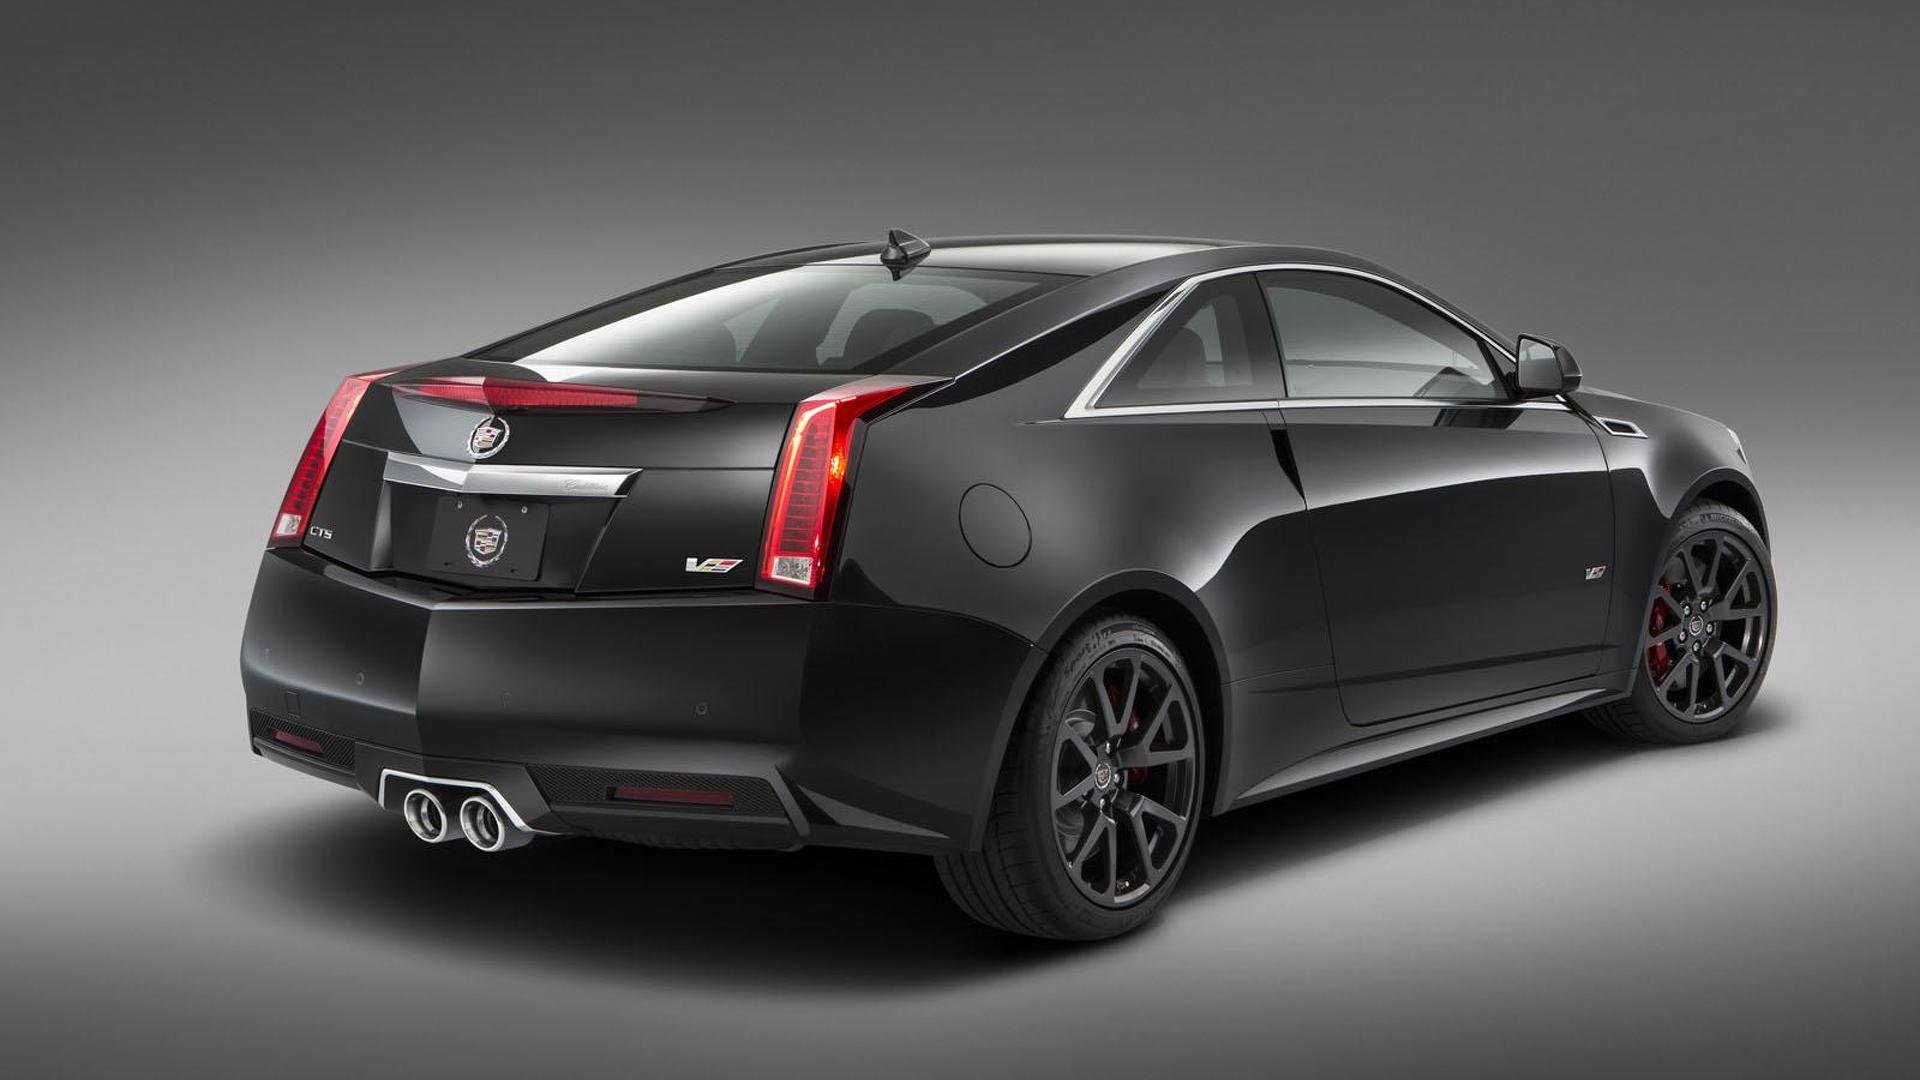 Cadillac V Series >> 2015 Cadillac Cts V Coupe Revealed New V Series Coming Next Year